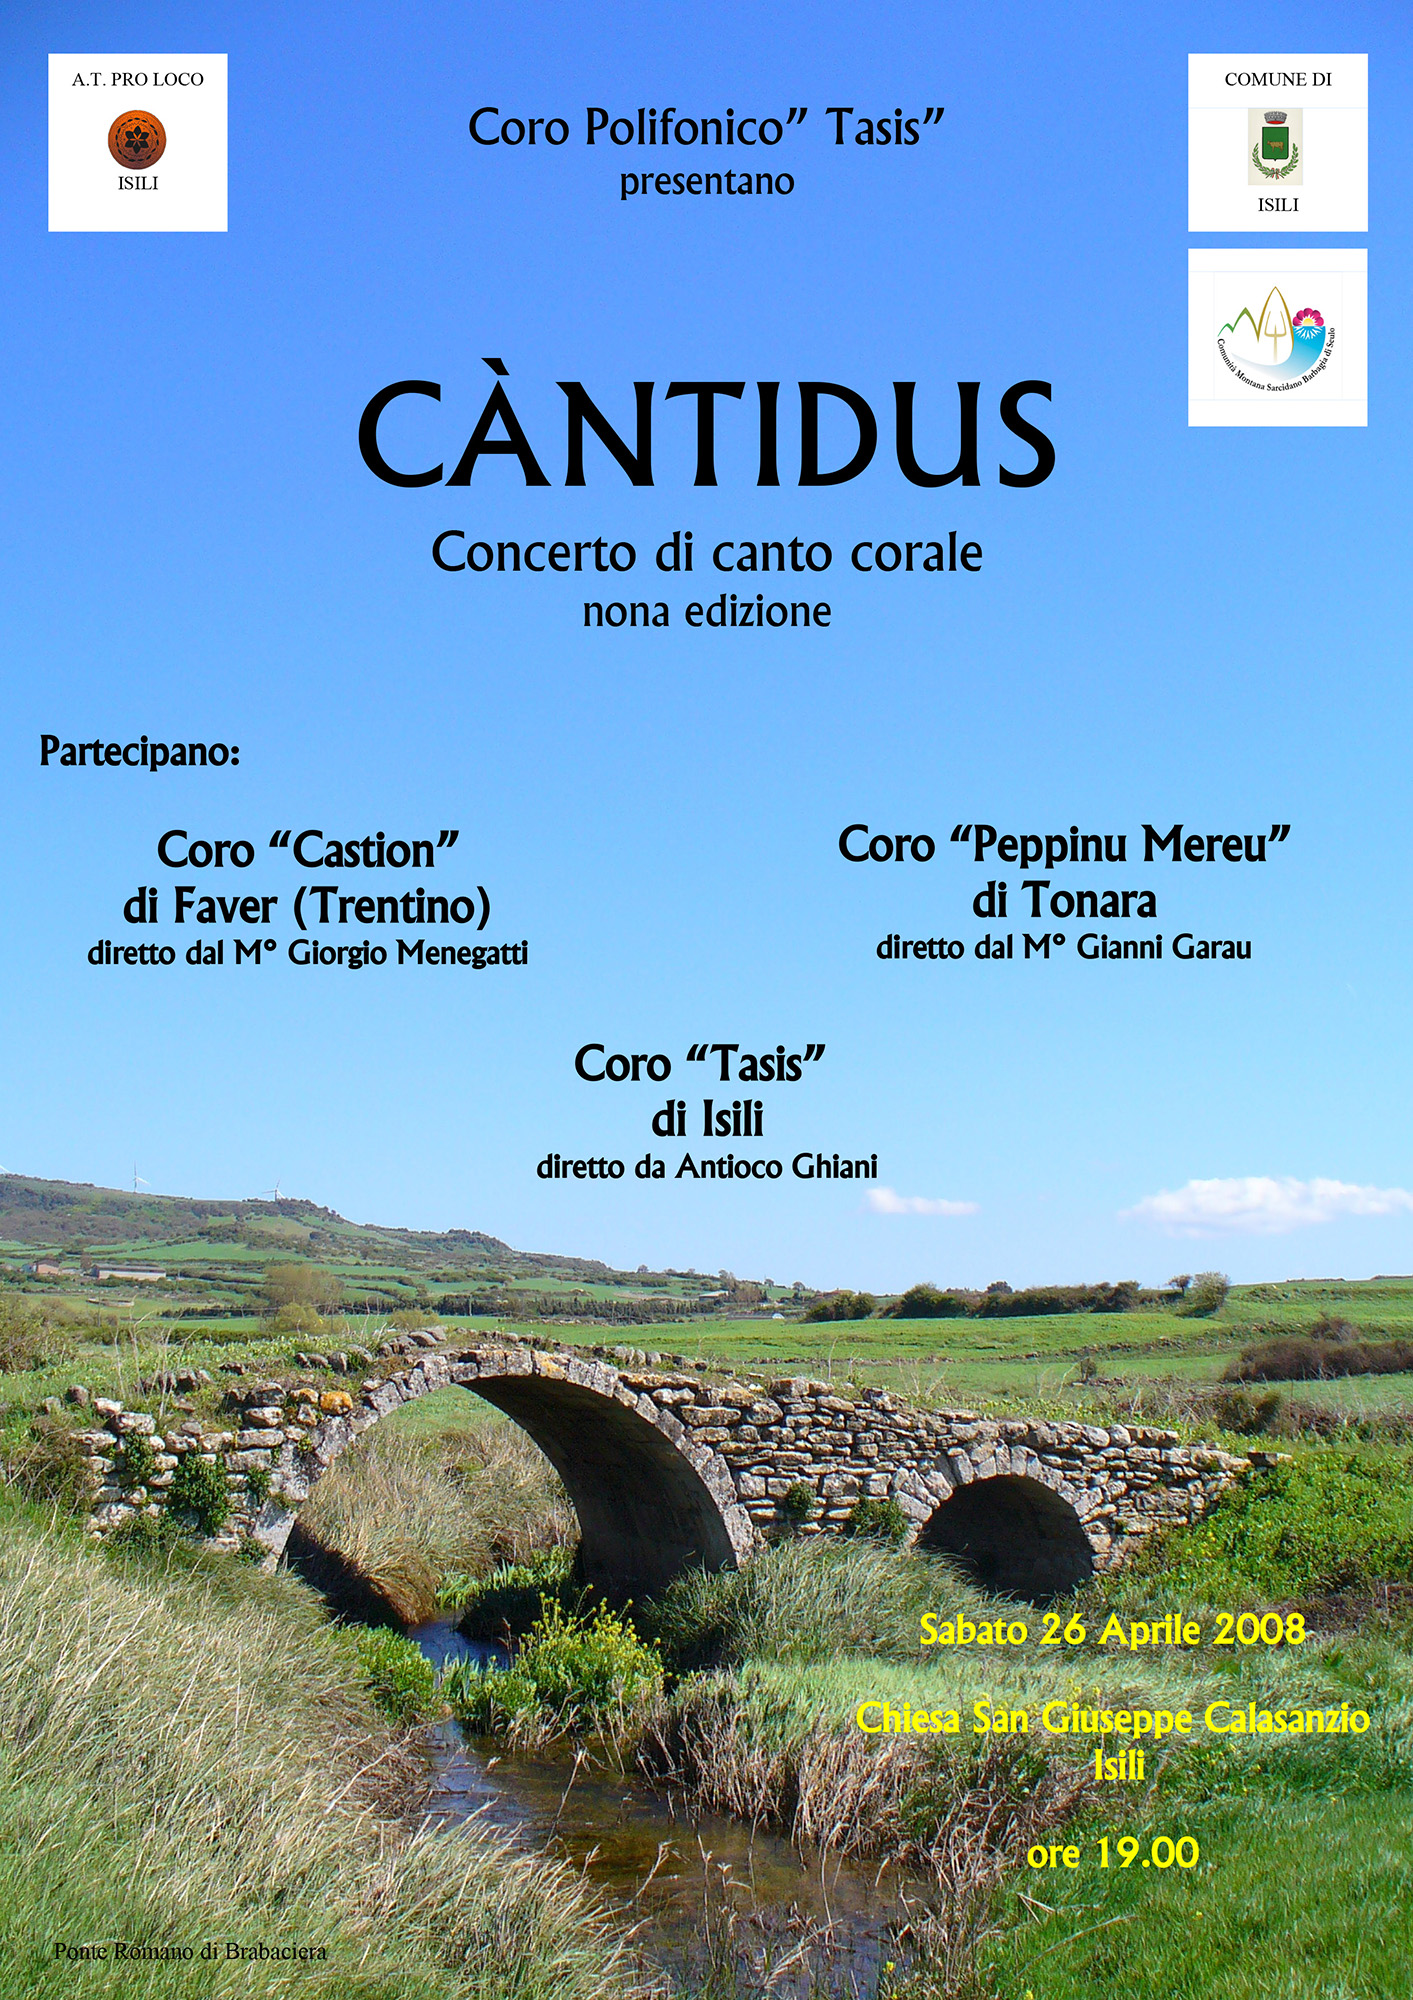 Cantidus 2008